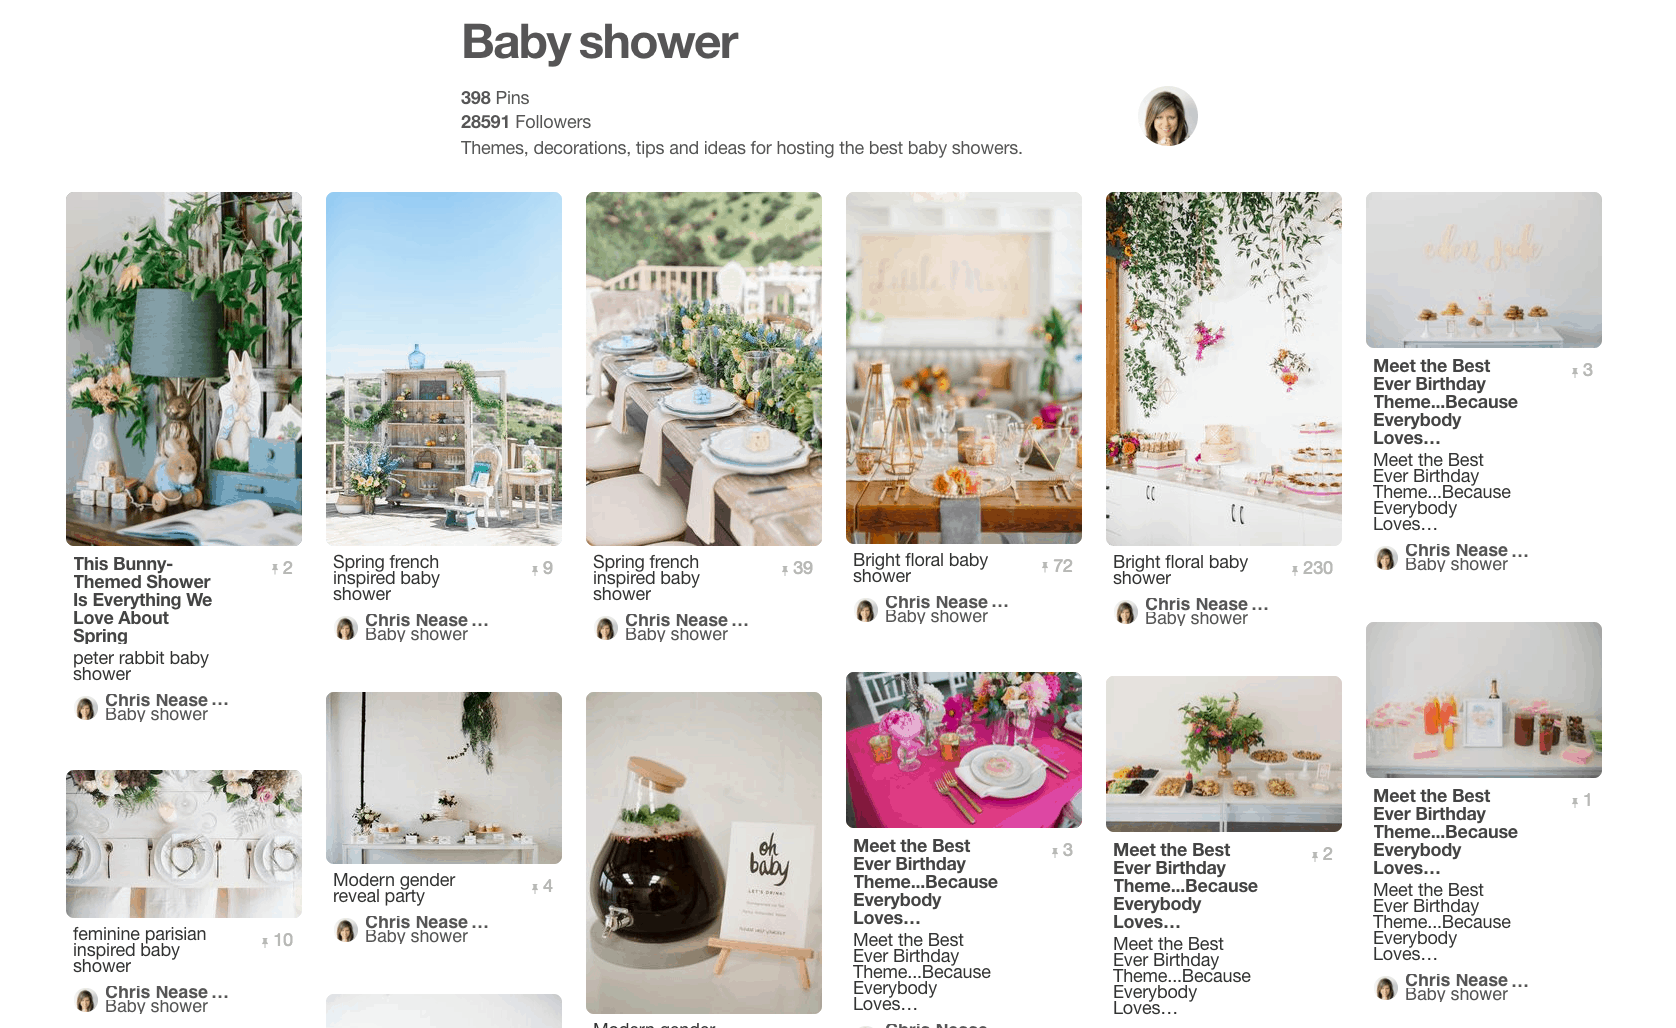 Collage of multiple baby shower party ideas.